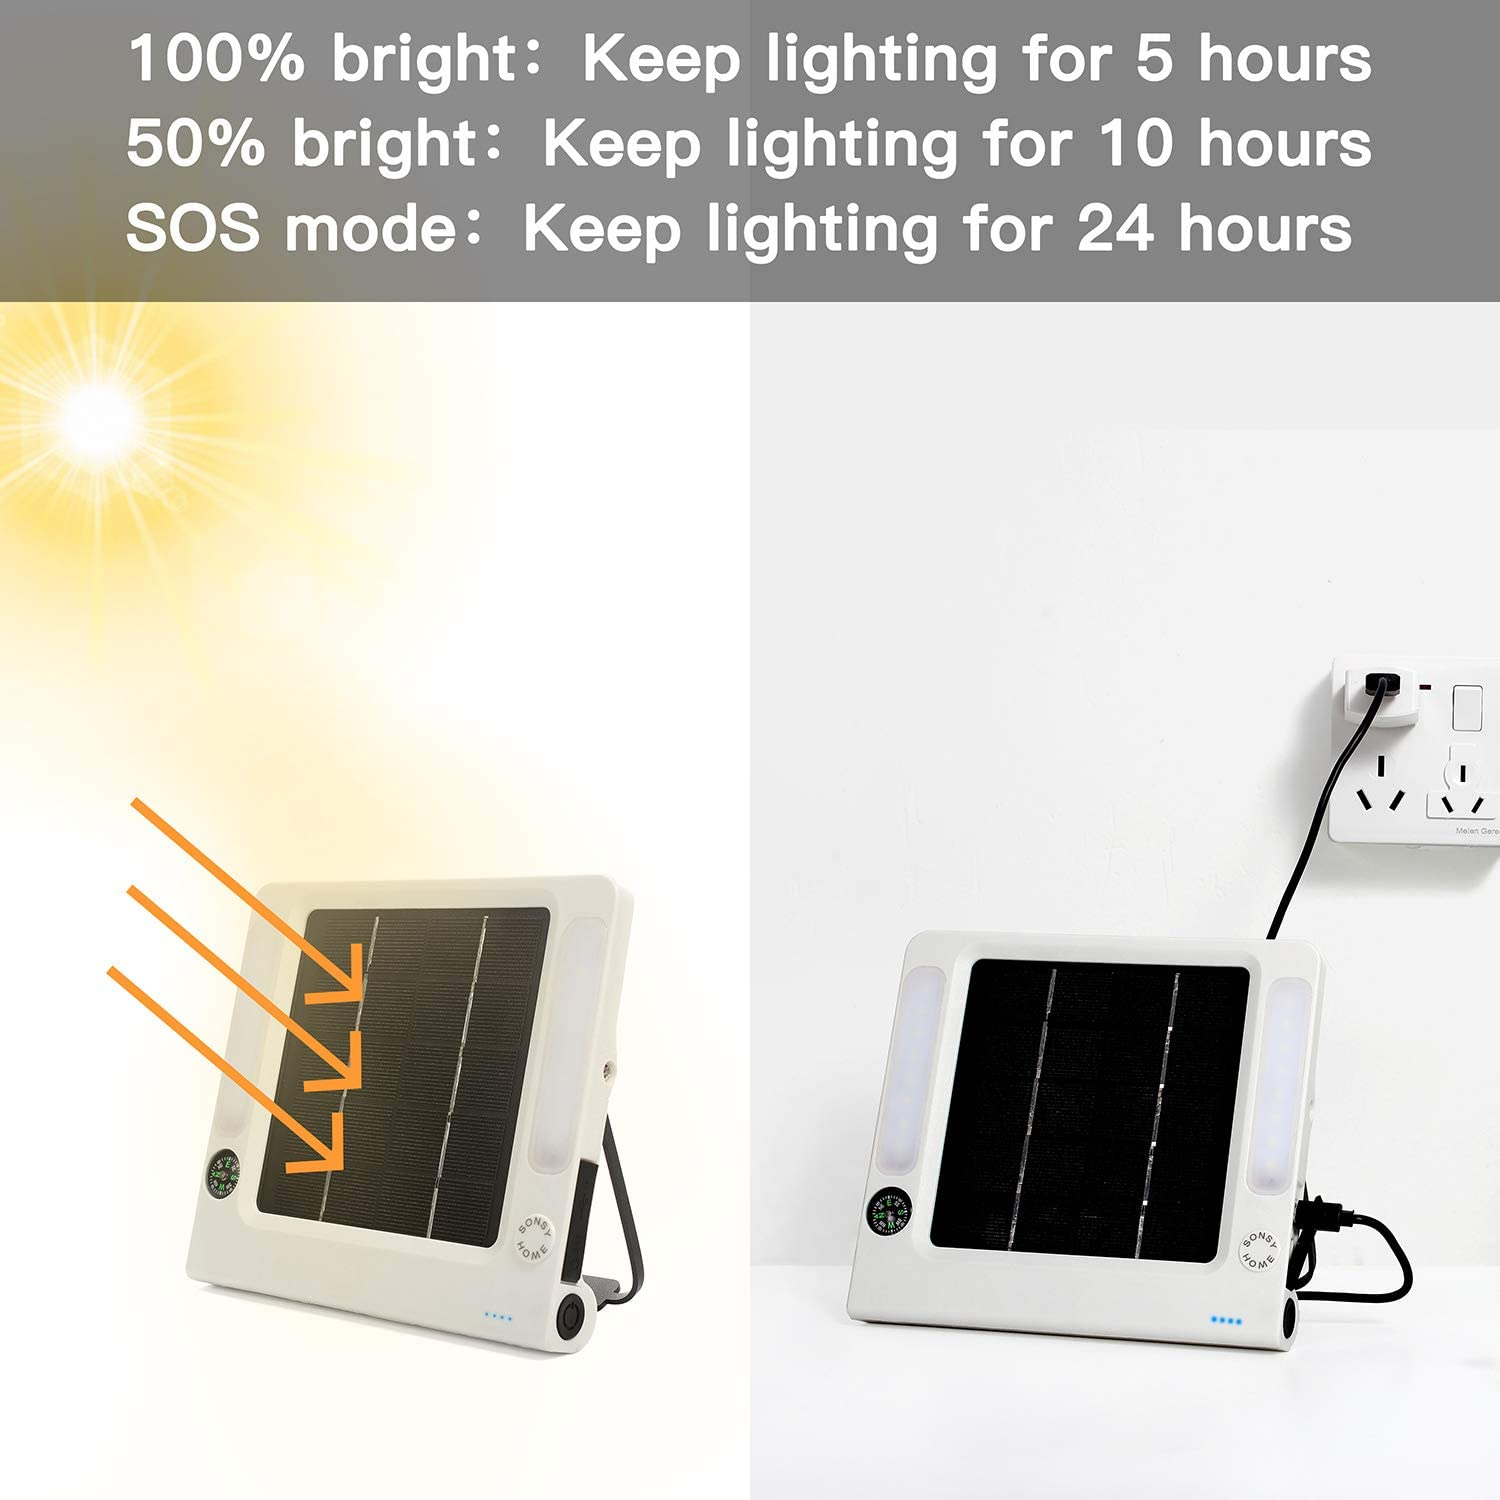 Suitable for Camping,Tent,Hiking Solar Camping Light 5W 250lm,Solar Phone Charger,USB Connector-3 Working Mode